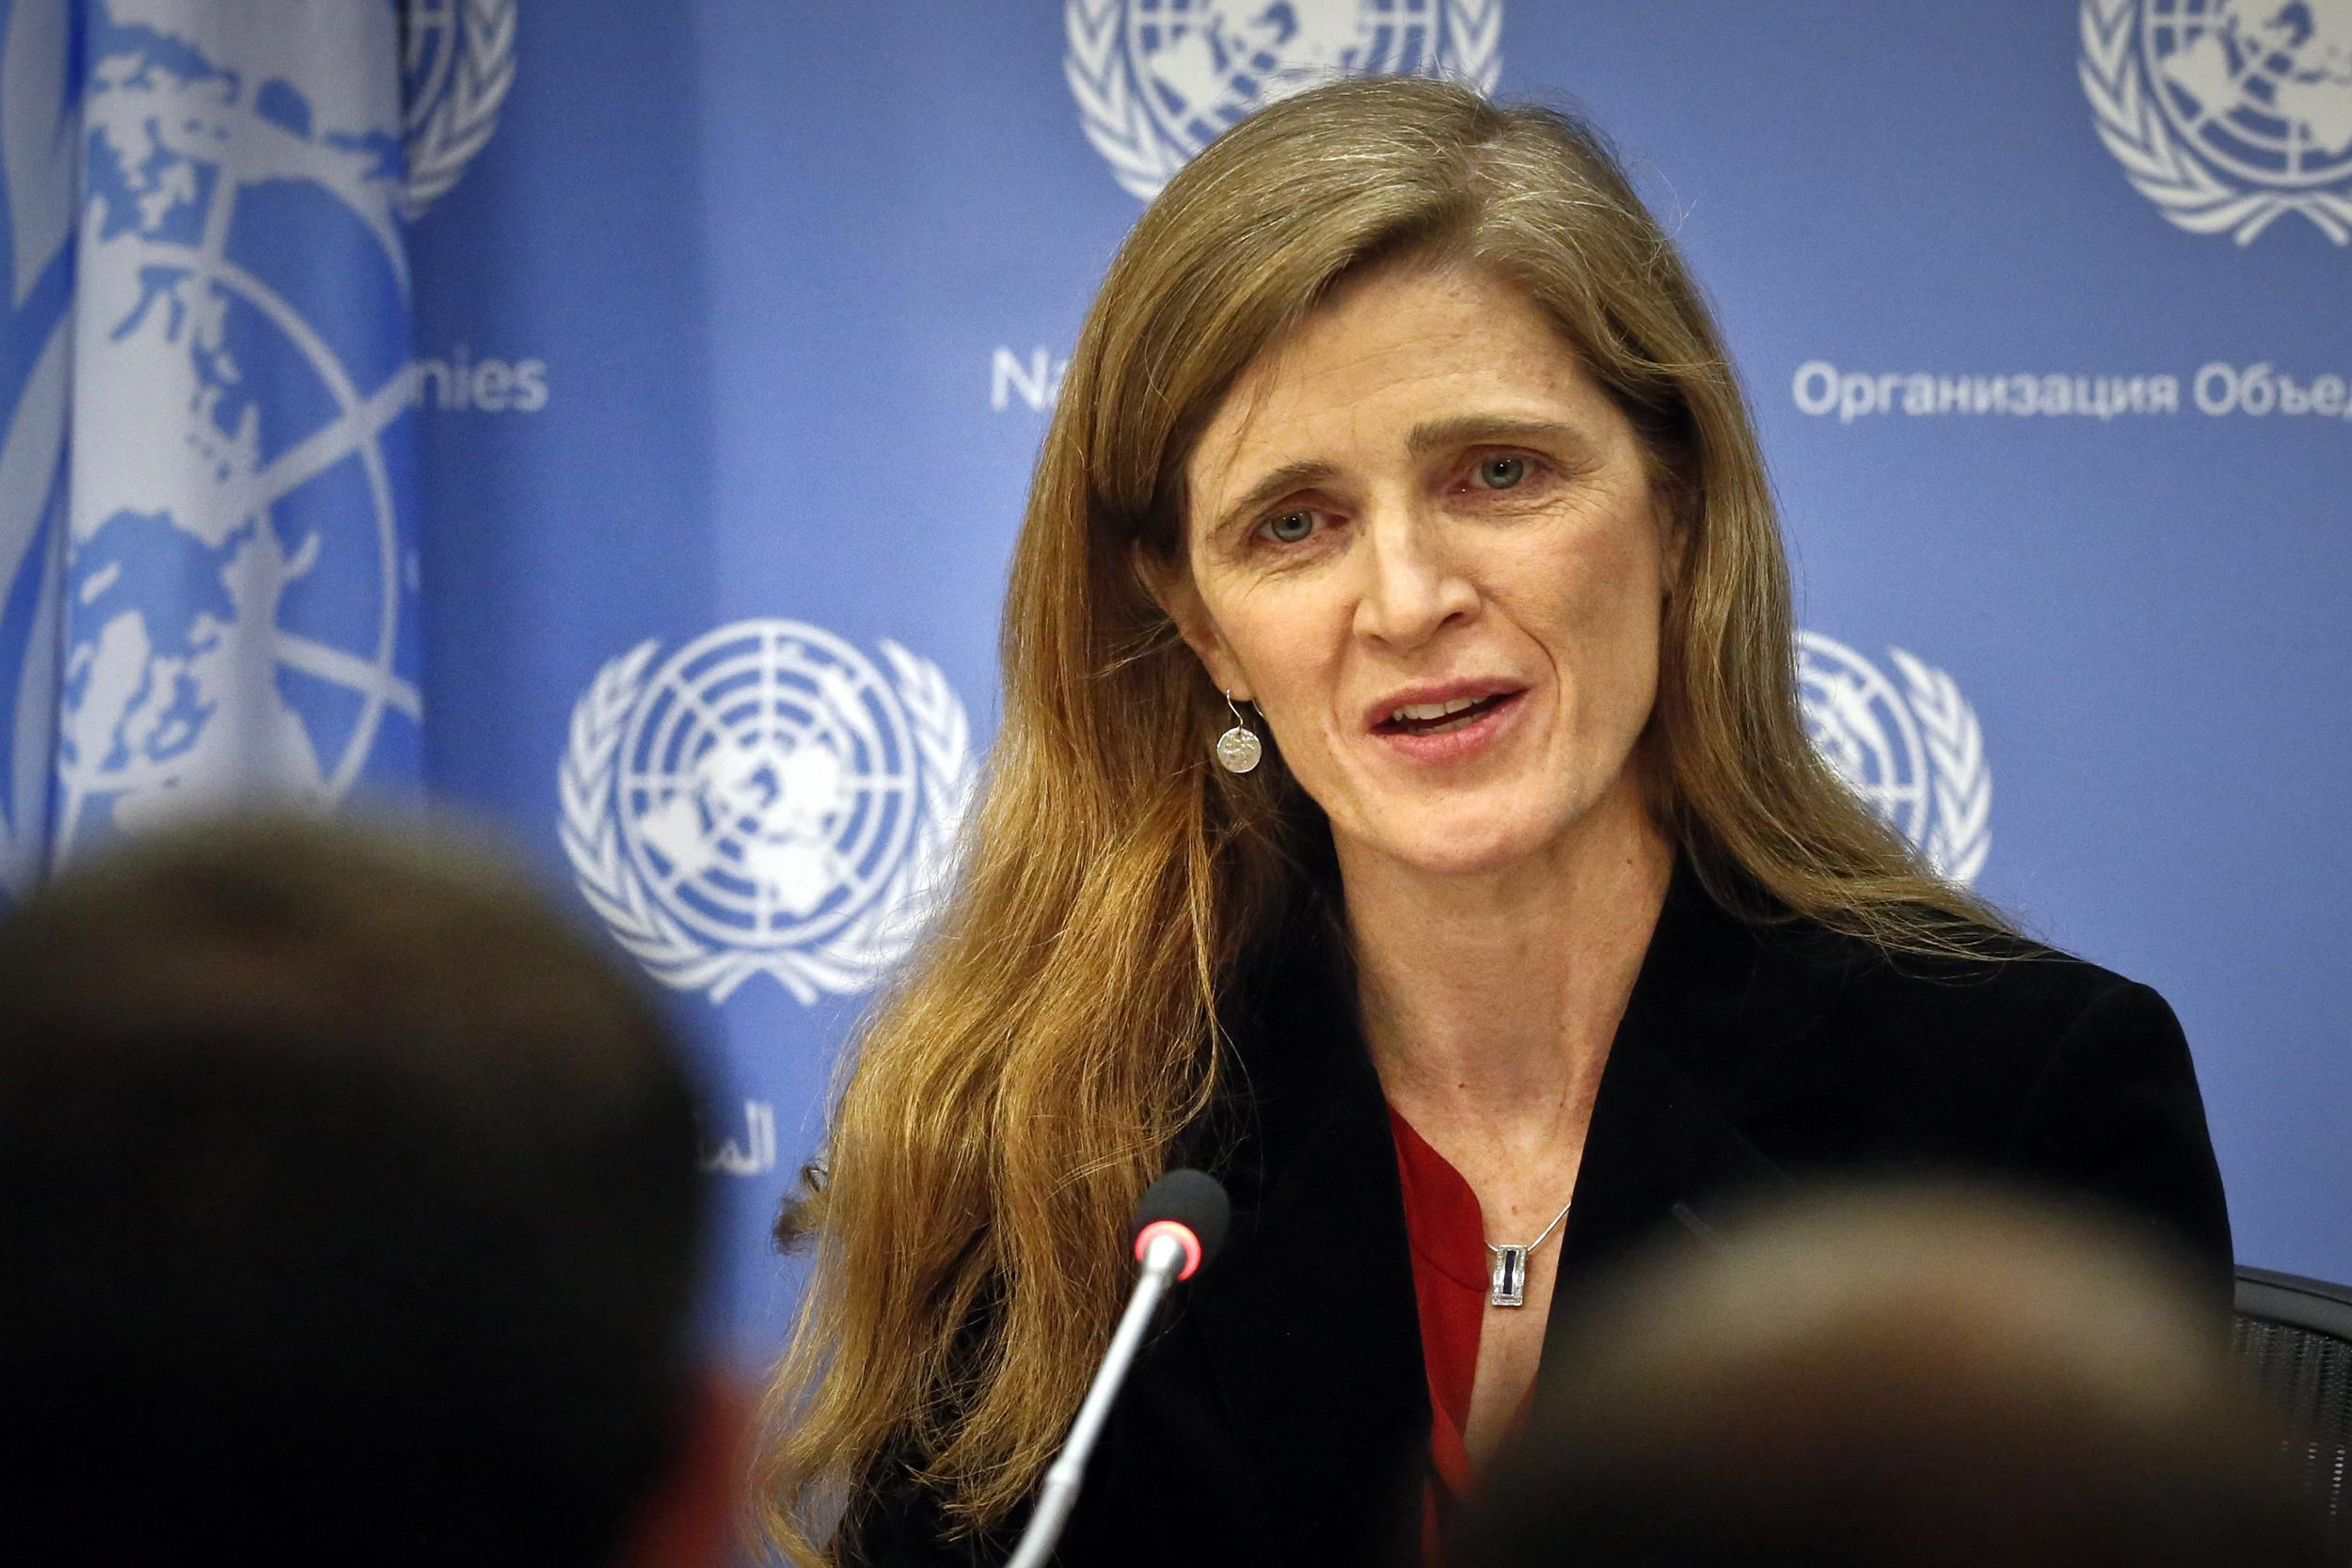 Biden to nominate Samantha Power to lead foreign aid agency